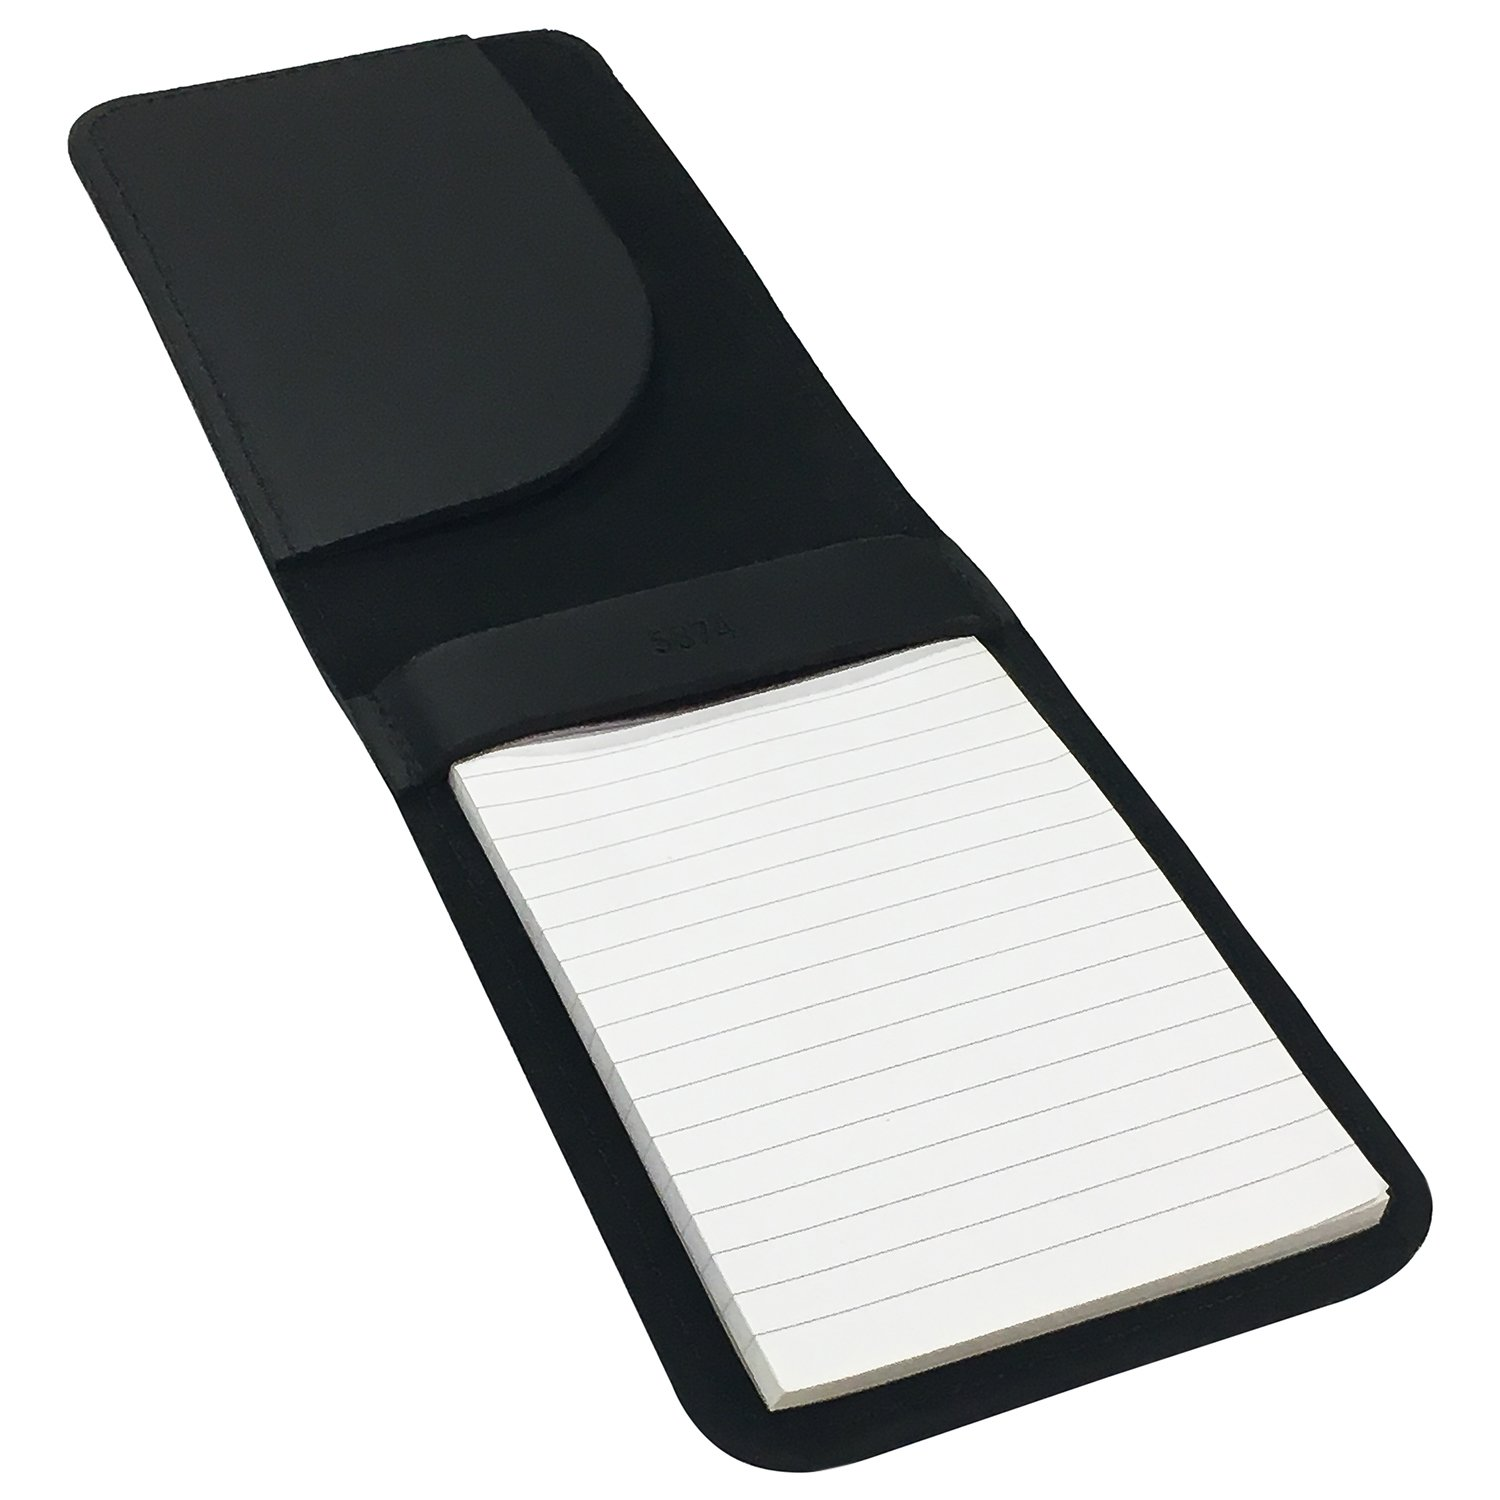 Memo Pad Cover & Holder, 3.5-Inch X 5.5-Inch Pocket Notebook, Includes One 3X5 Memo Pad by Boston Leather (Image #3)